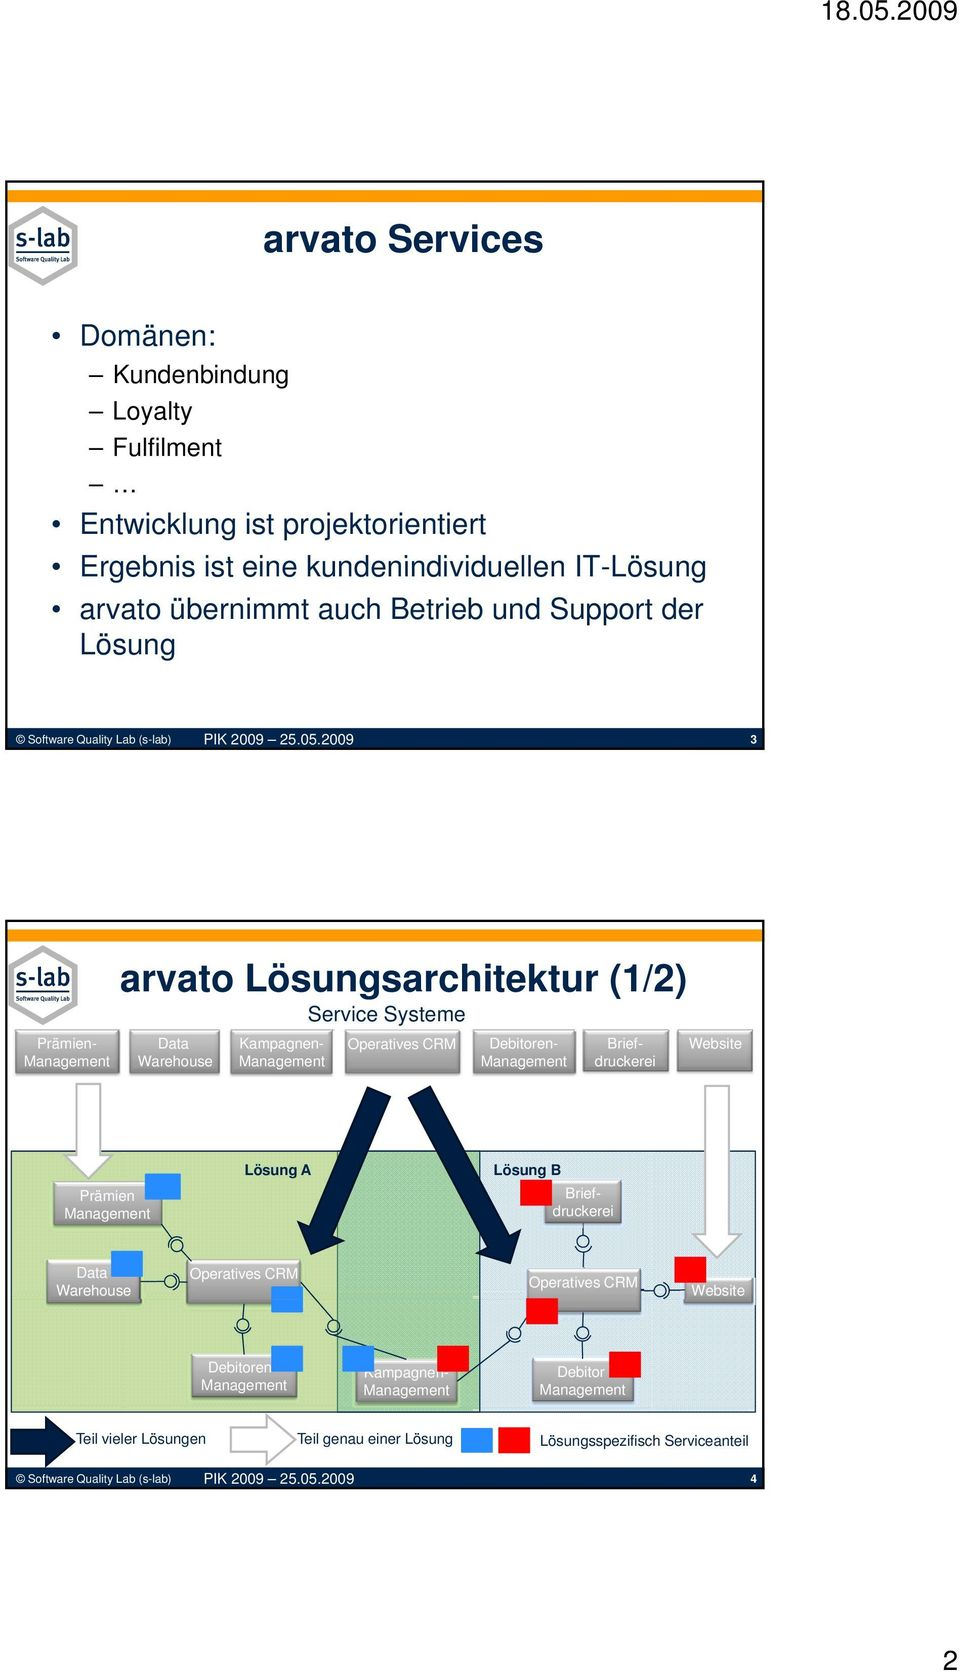 Lösungsarchitektur (1/2) Systeme Prämien- Data Warehouse Kampagnen- Debitoren- Briefdruckerei Website Lösung B